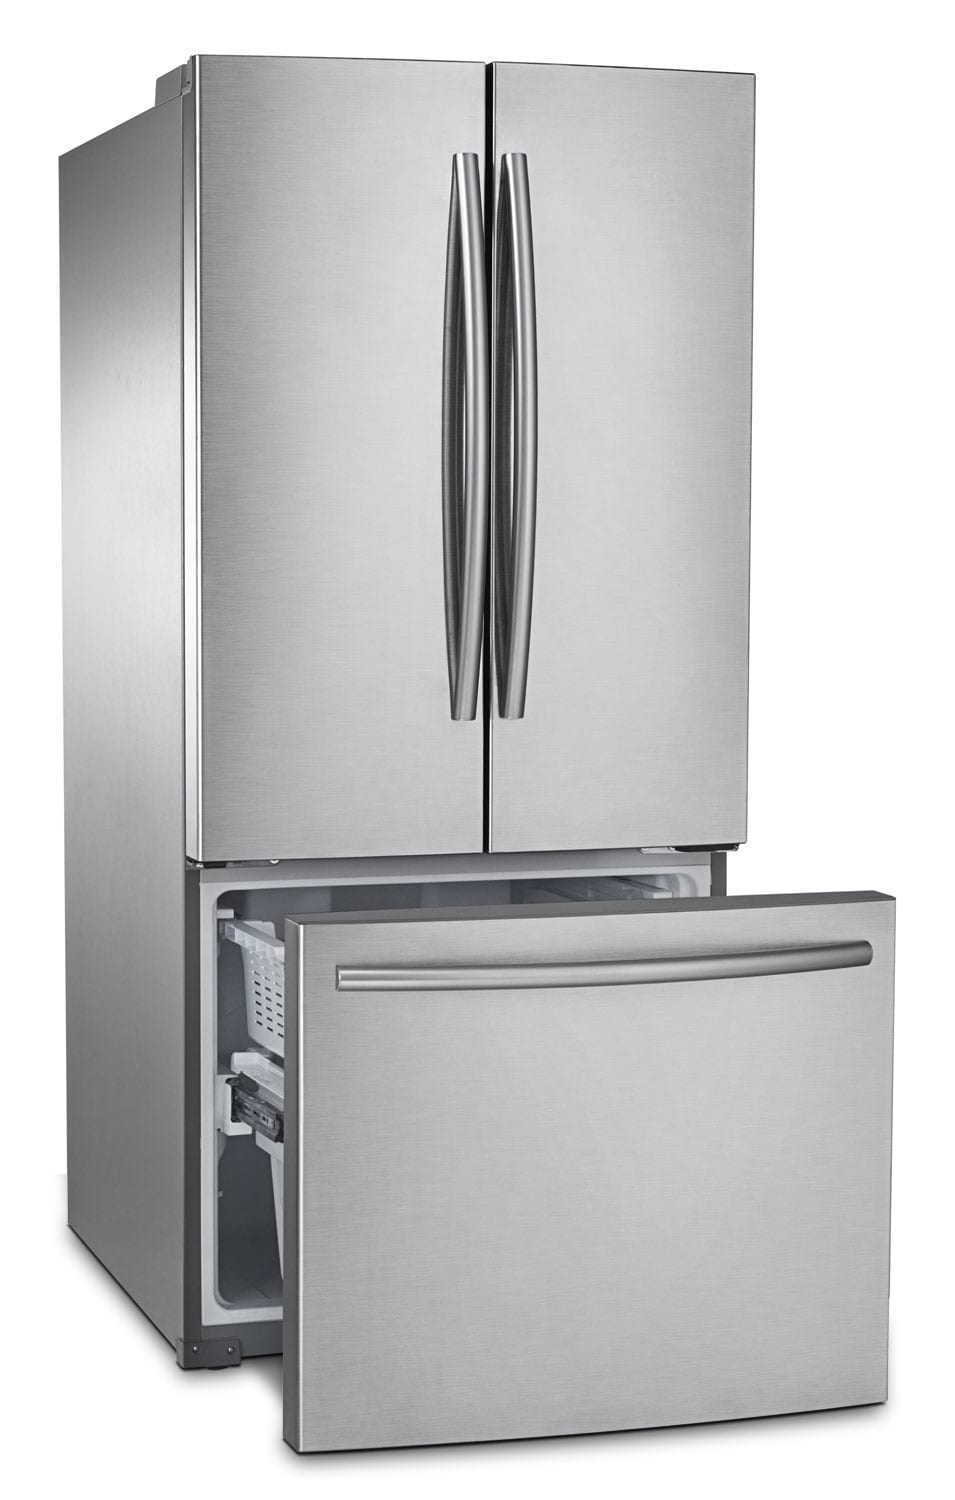 Samsung Stainless Steel French Door Refrigerator 21 6 Cu